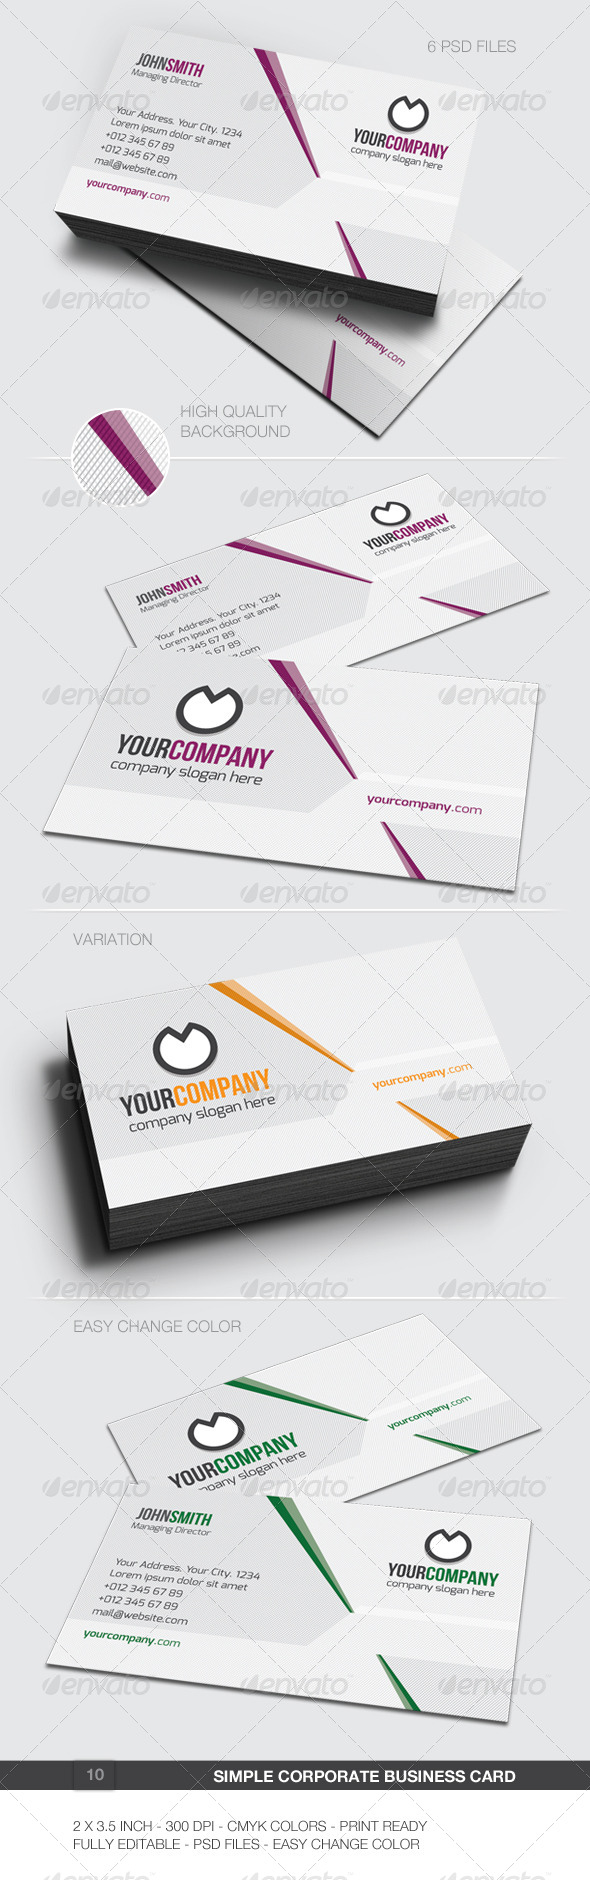 GraphicRiver Simple Corporate Business Card 10 5988935